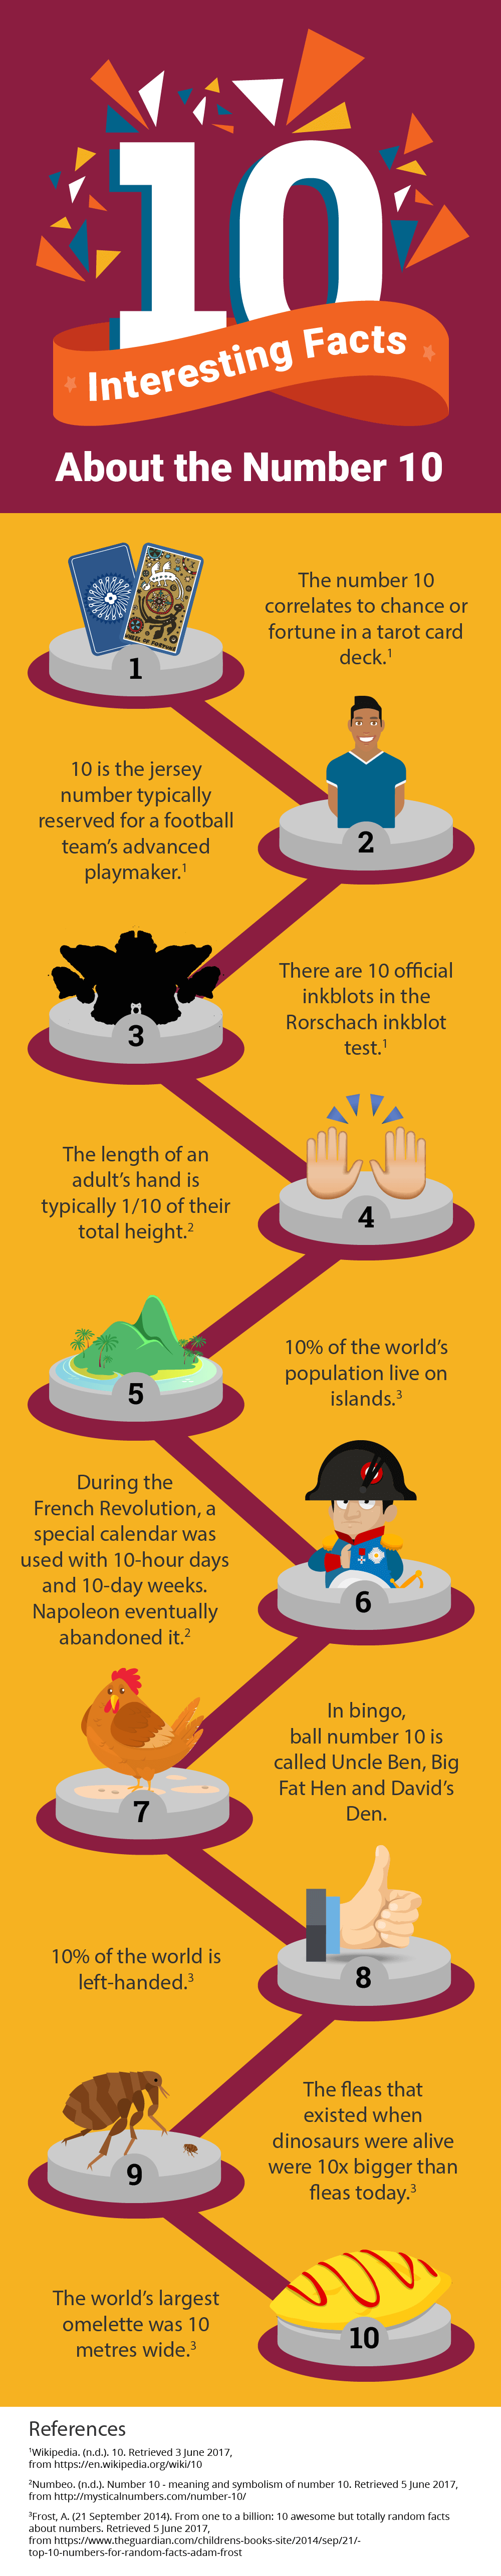 10 Intriguing Facts About The Number 10 - Infographic